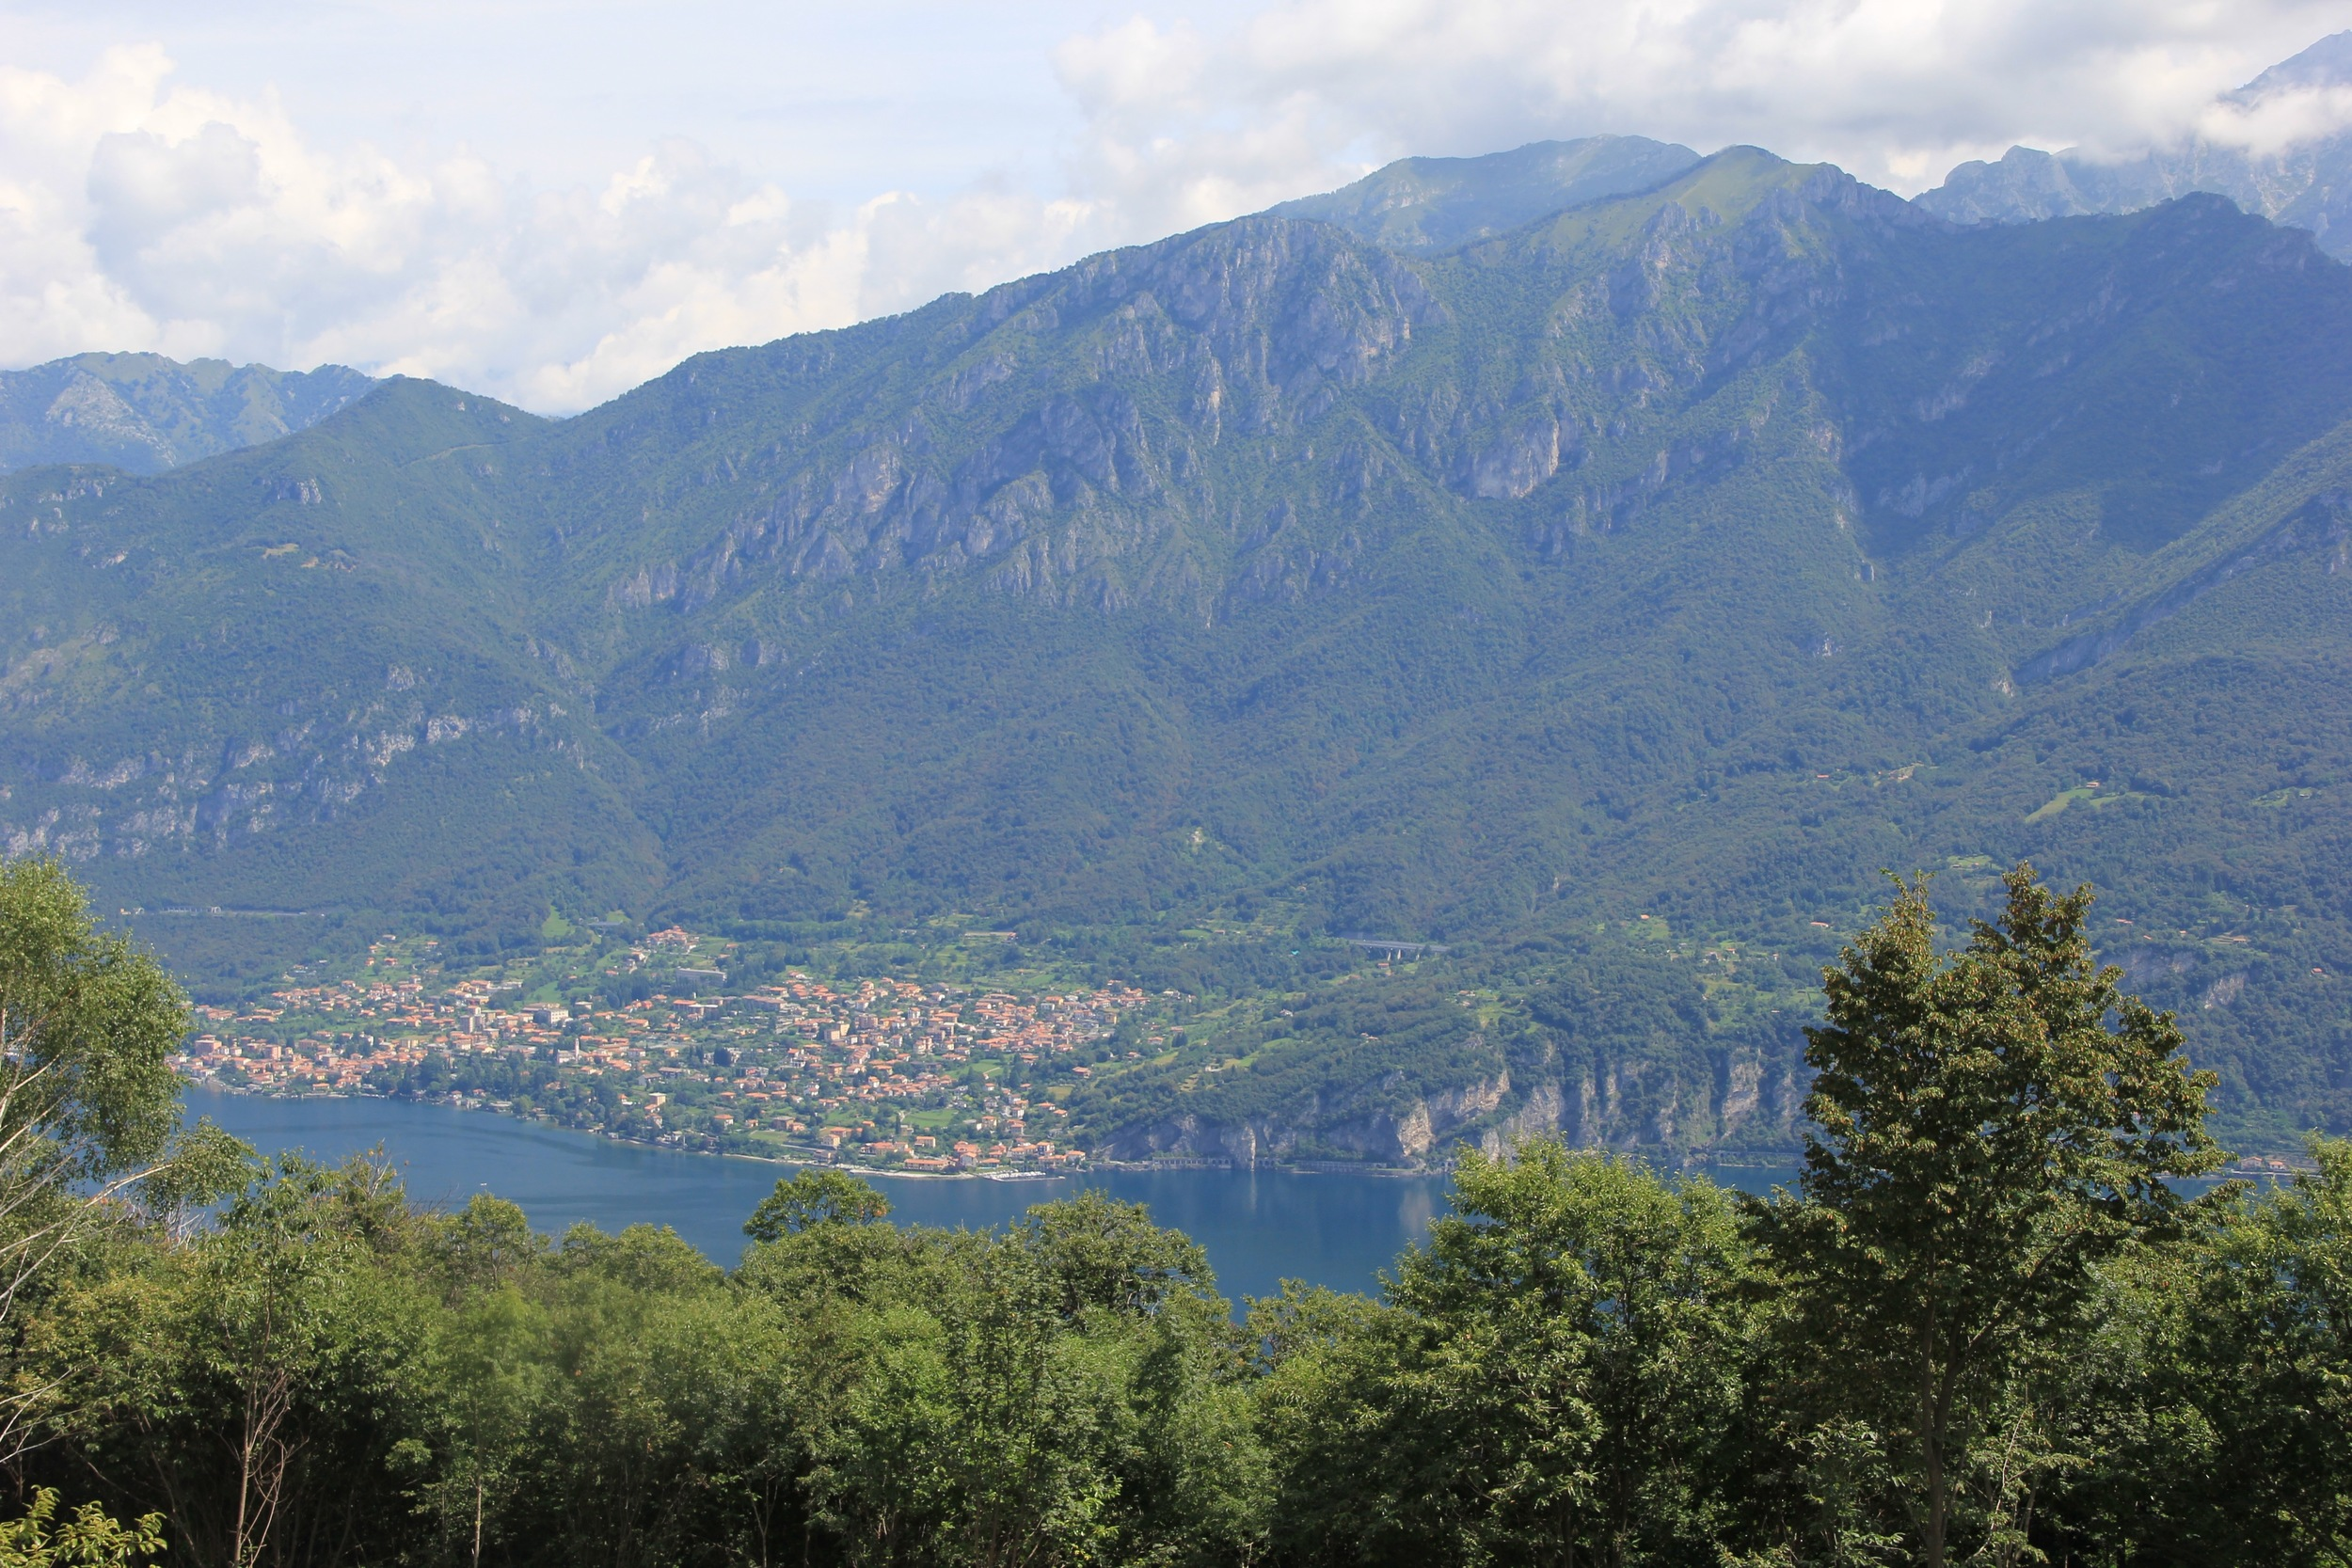 Lake Como in all its glory